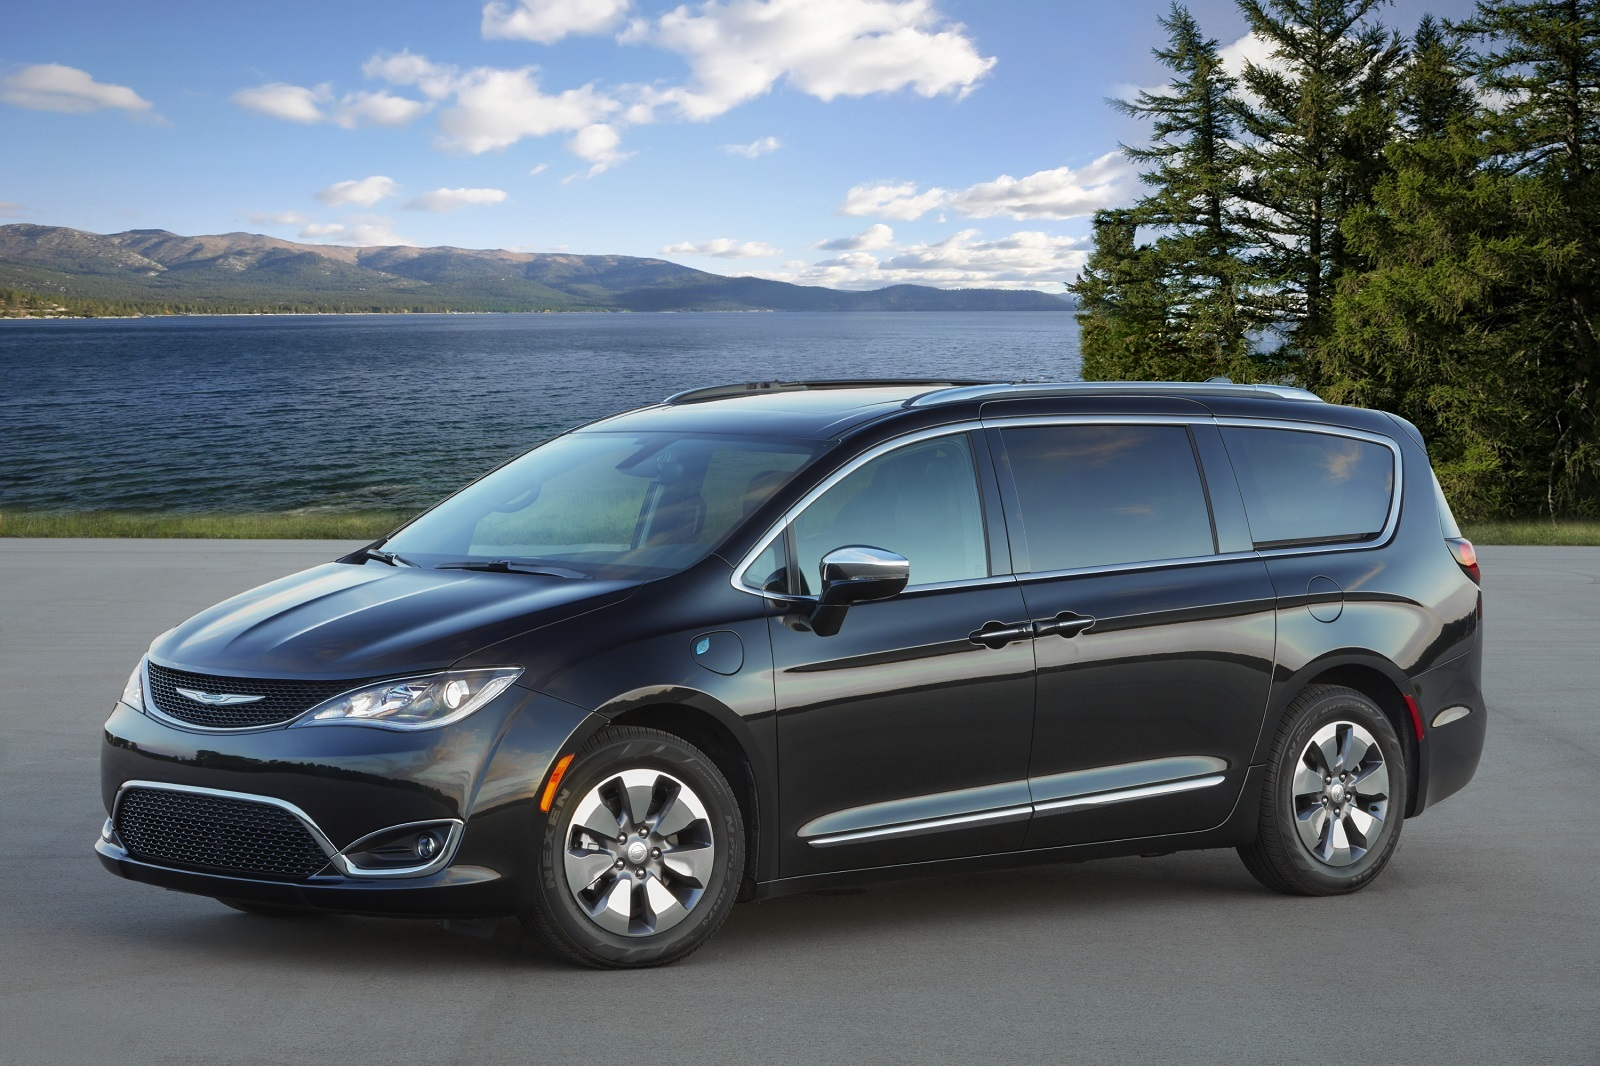 Chrysler Pacifica Hybrid, one of the best family road trip vehicles